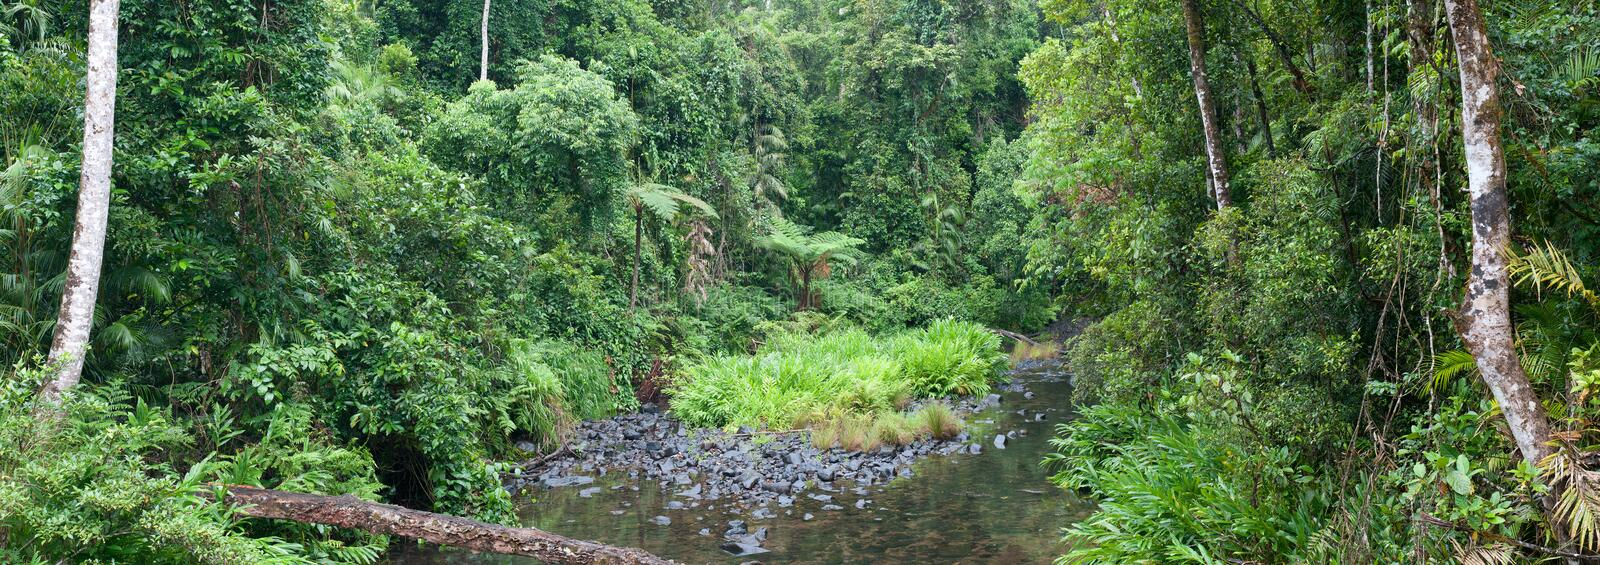 Download Jungle creek stock photo. Image of national, peaceful - 28490274